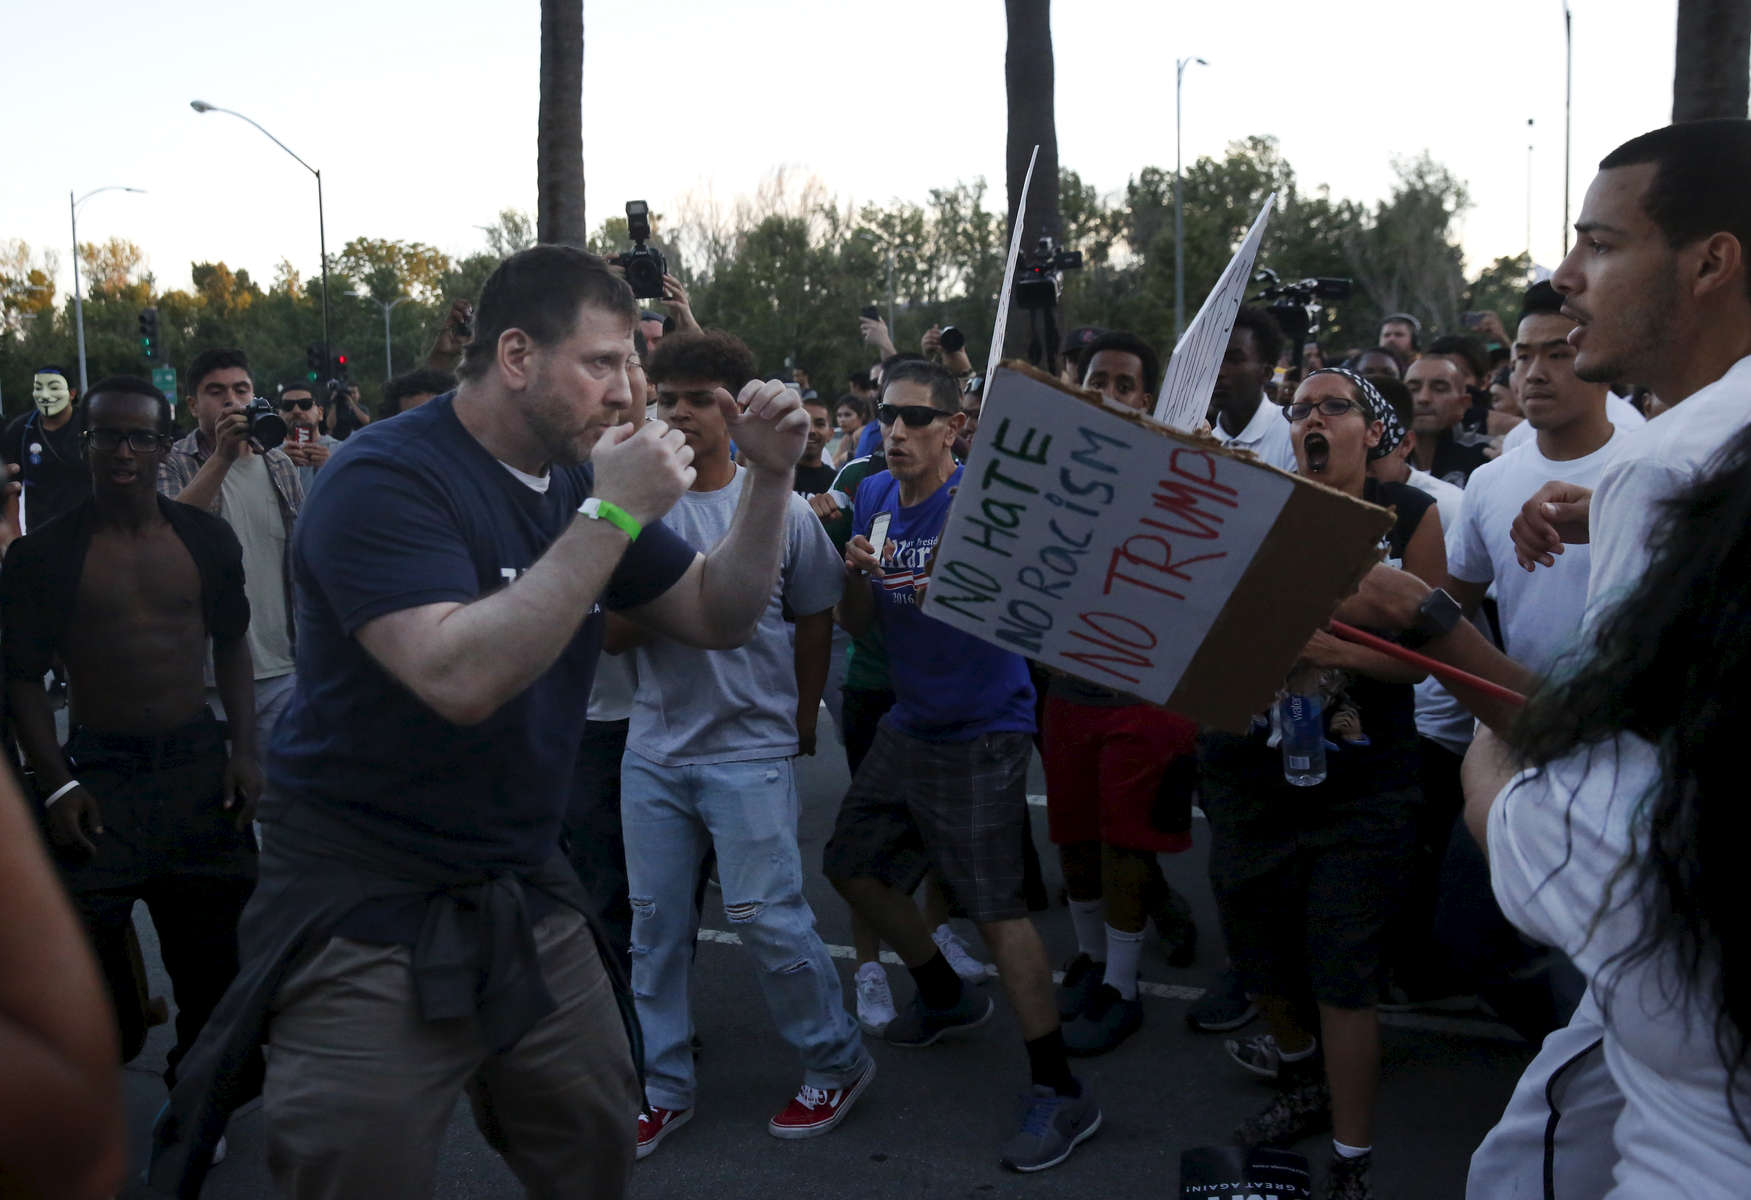 Eric Zarahn, a Trump supporter, gets in a fighting position after getting in a tiff with anti-Trump protesters after they surrounded him and snatched his hat off of his head near the convention center where presidential candidate Donald Trump held a campaign rally June 2, 2016 in downtown San Jose, Calif.